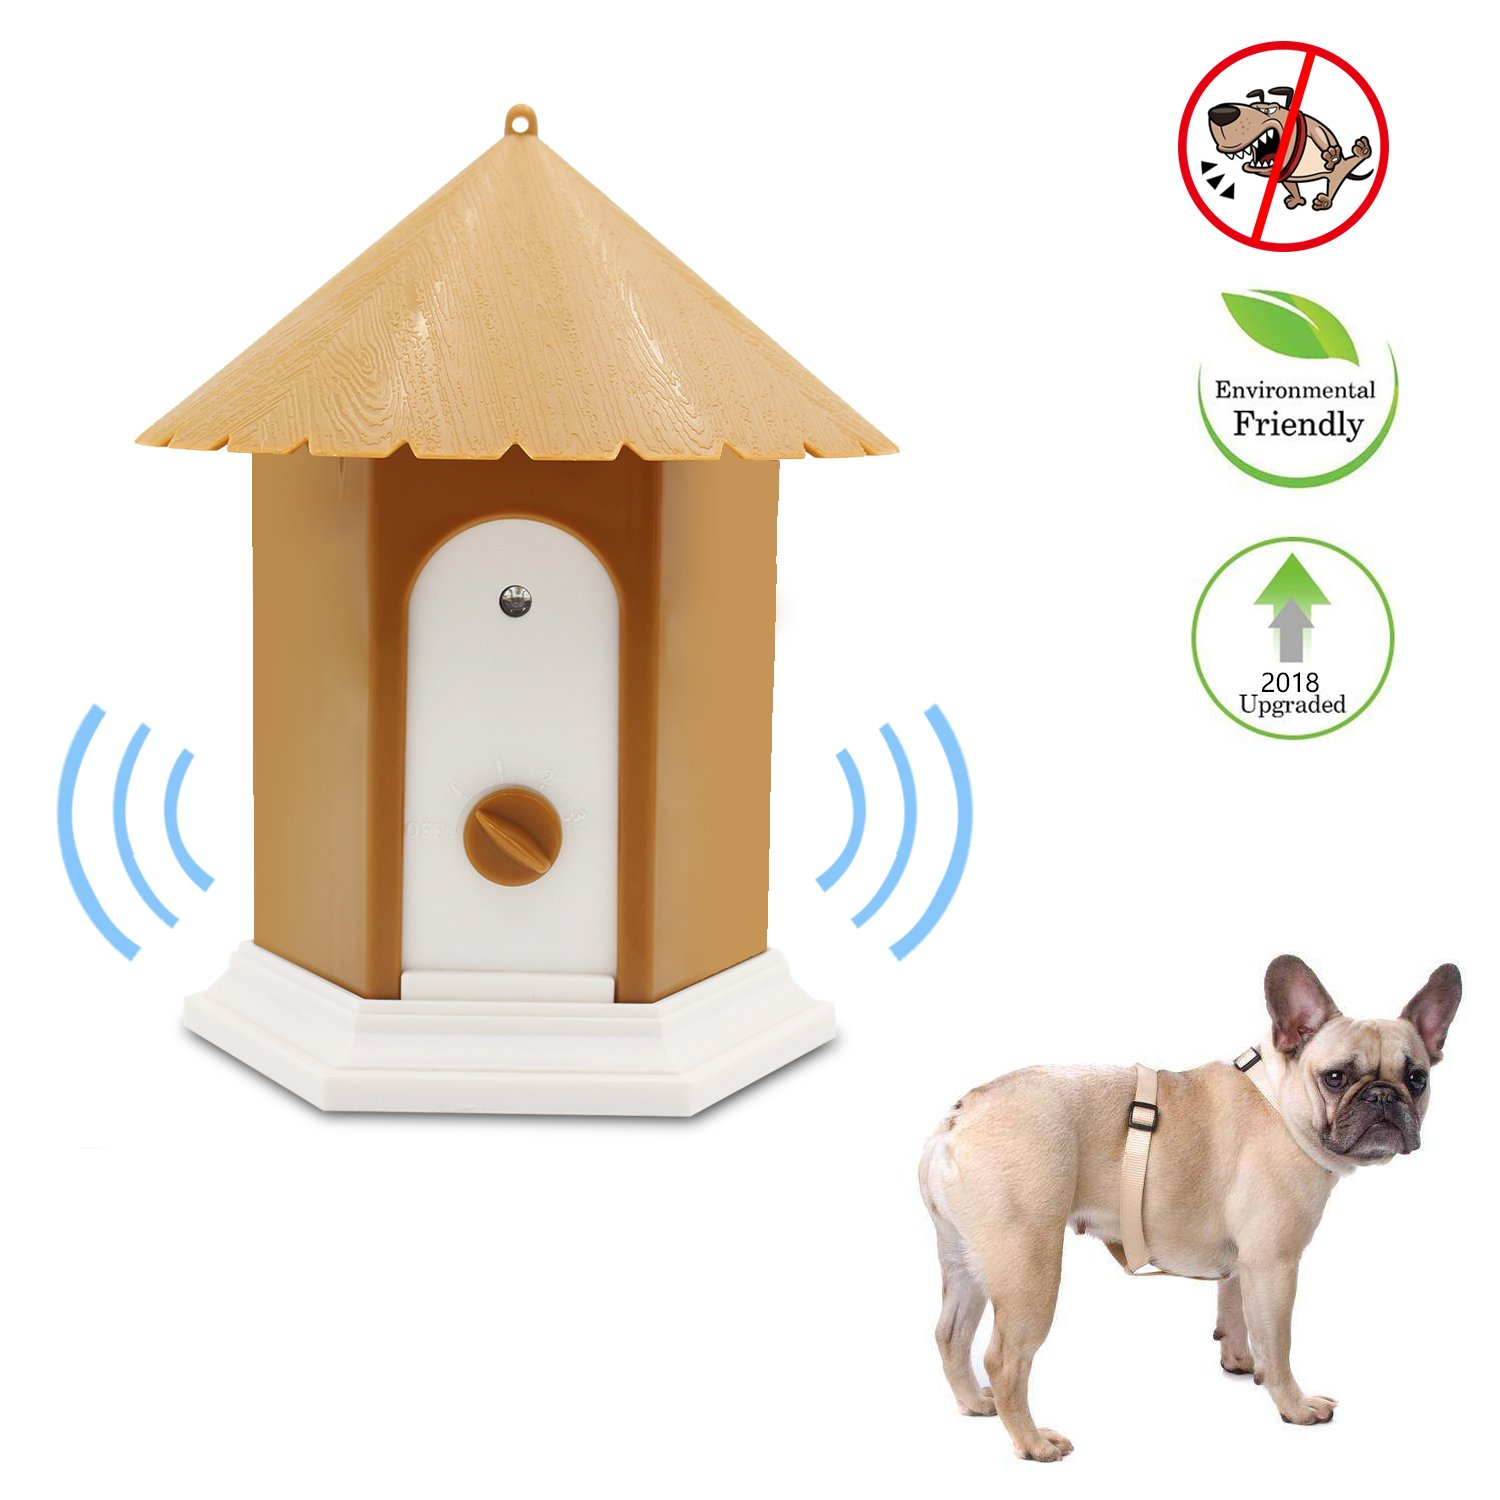 Fomei Harmless Ultrasonic Dog Bark Control Devices Waterproof Outdoor Anti Dog Bark Controller Bark Stop Repeller Silence Dog Training Repellent, Easy Hanging with 3 Mounting Modes(Pavilion-shaped)